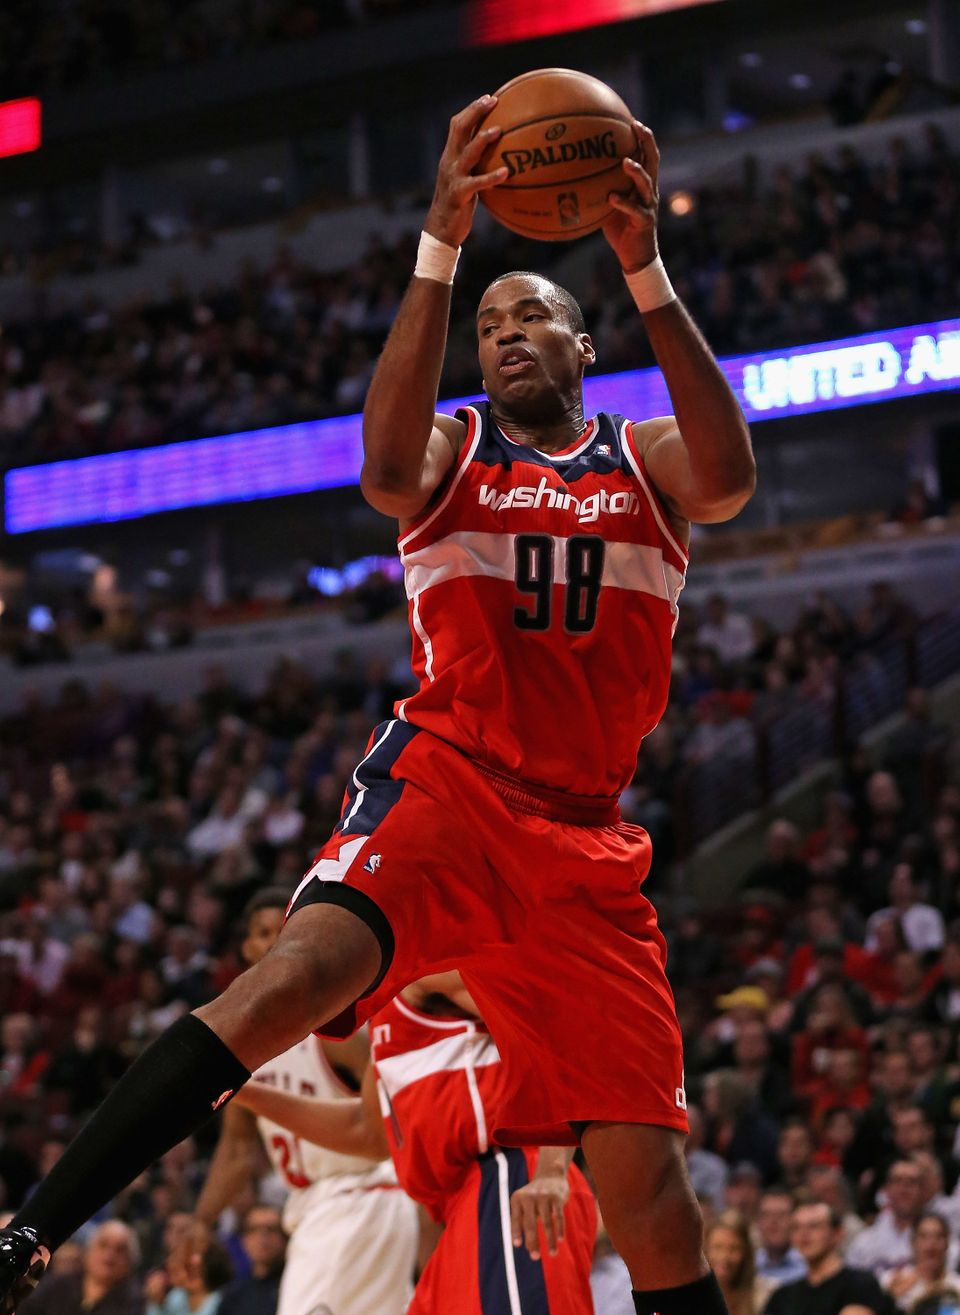 Collins, a free agent who played for the Boston Celtics and the Washington Wizards in the National Basketball Association's 2